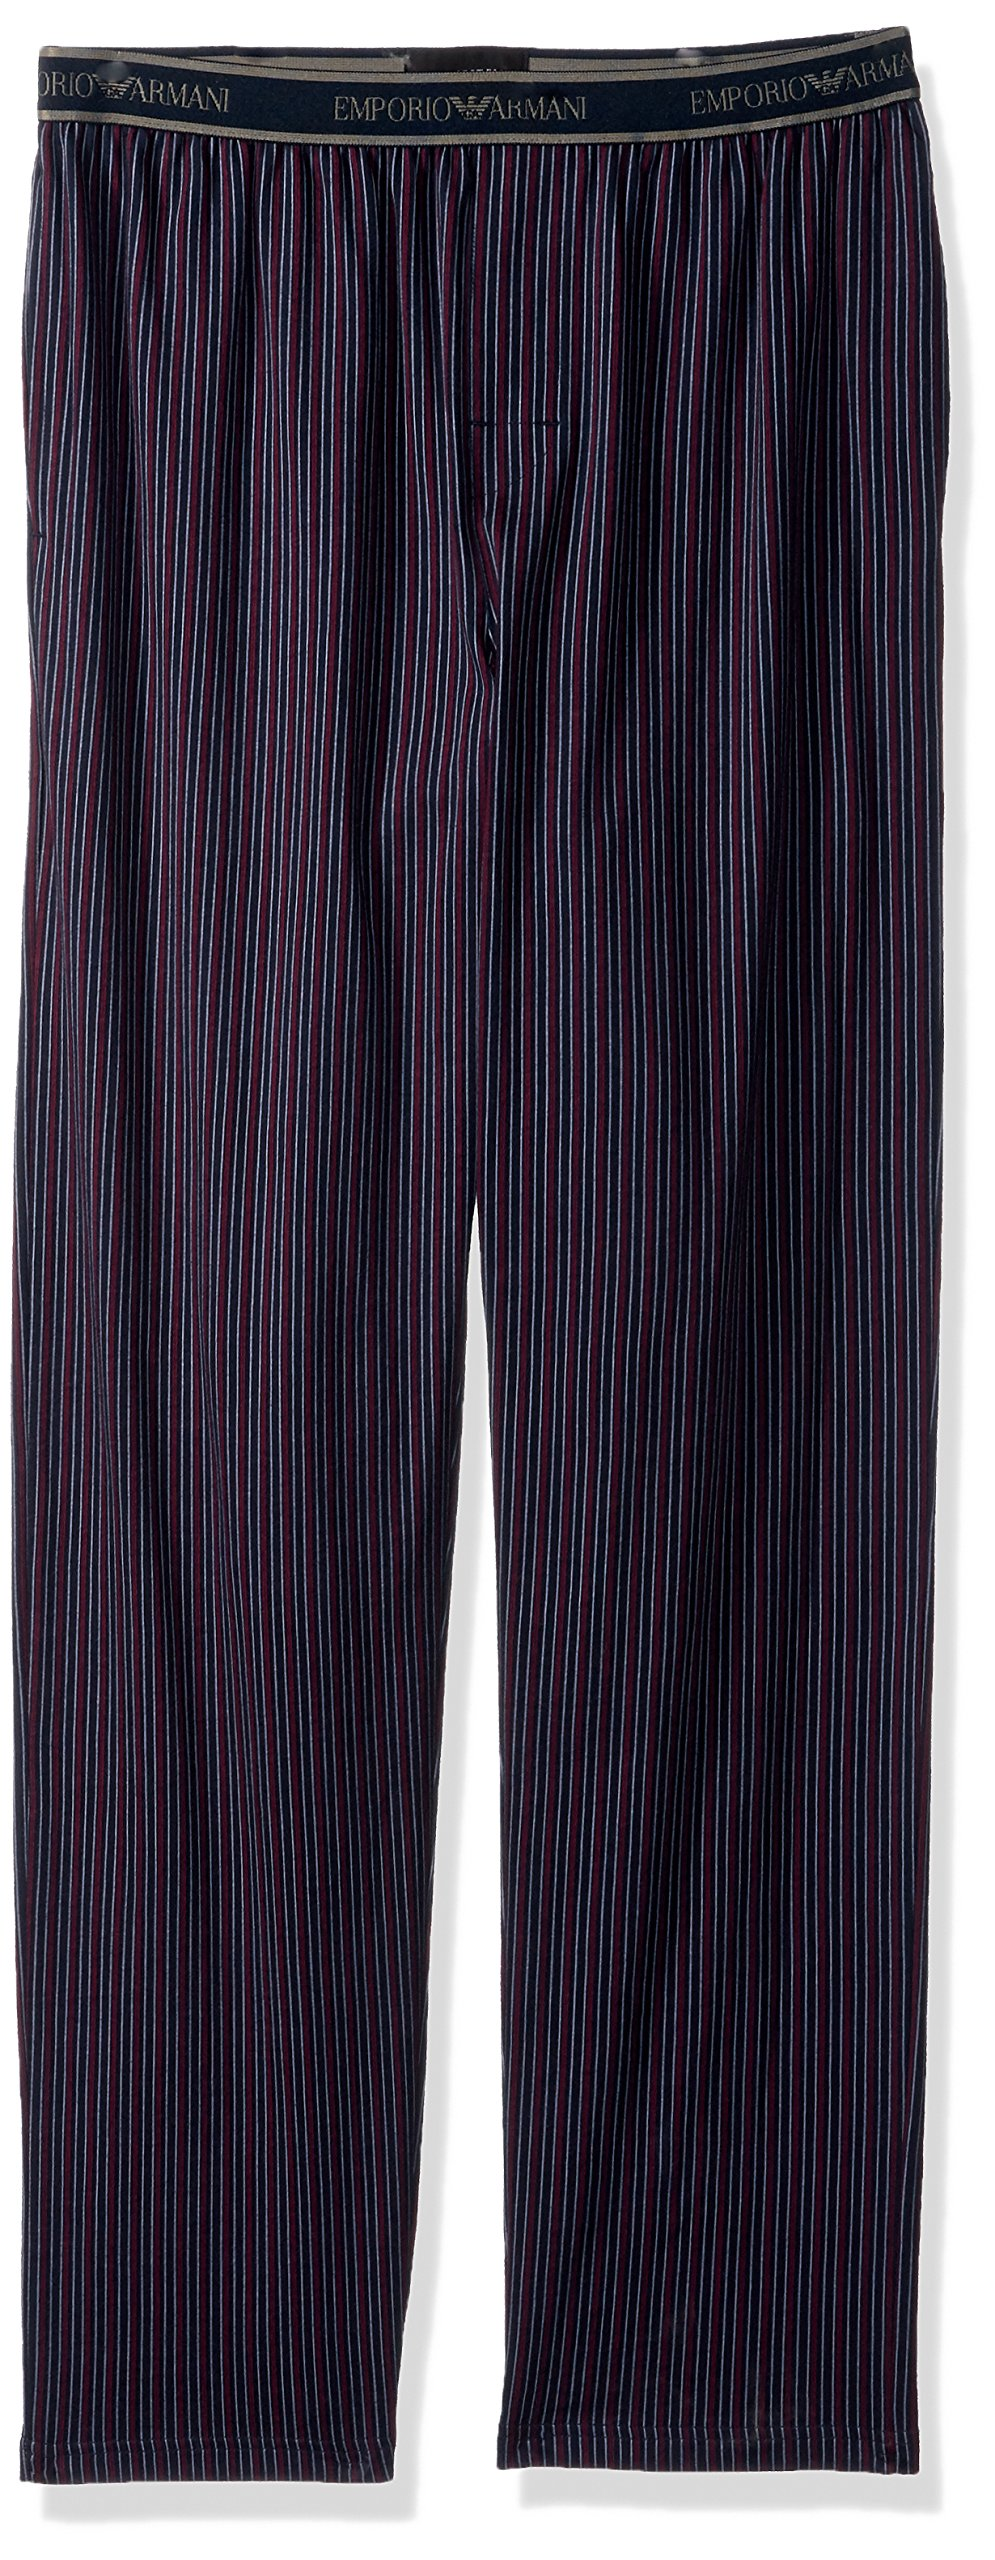 Emporio Armani Men's Jersey Printed Patterns Trousers, Vertical Line, L